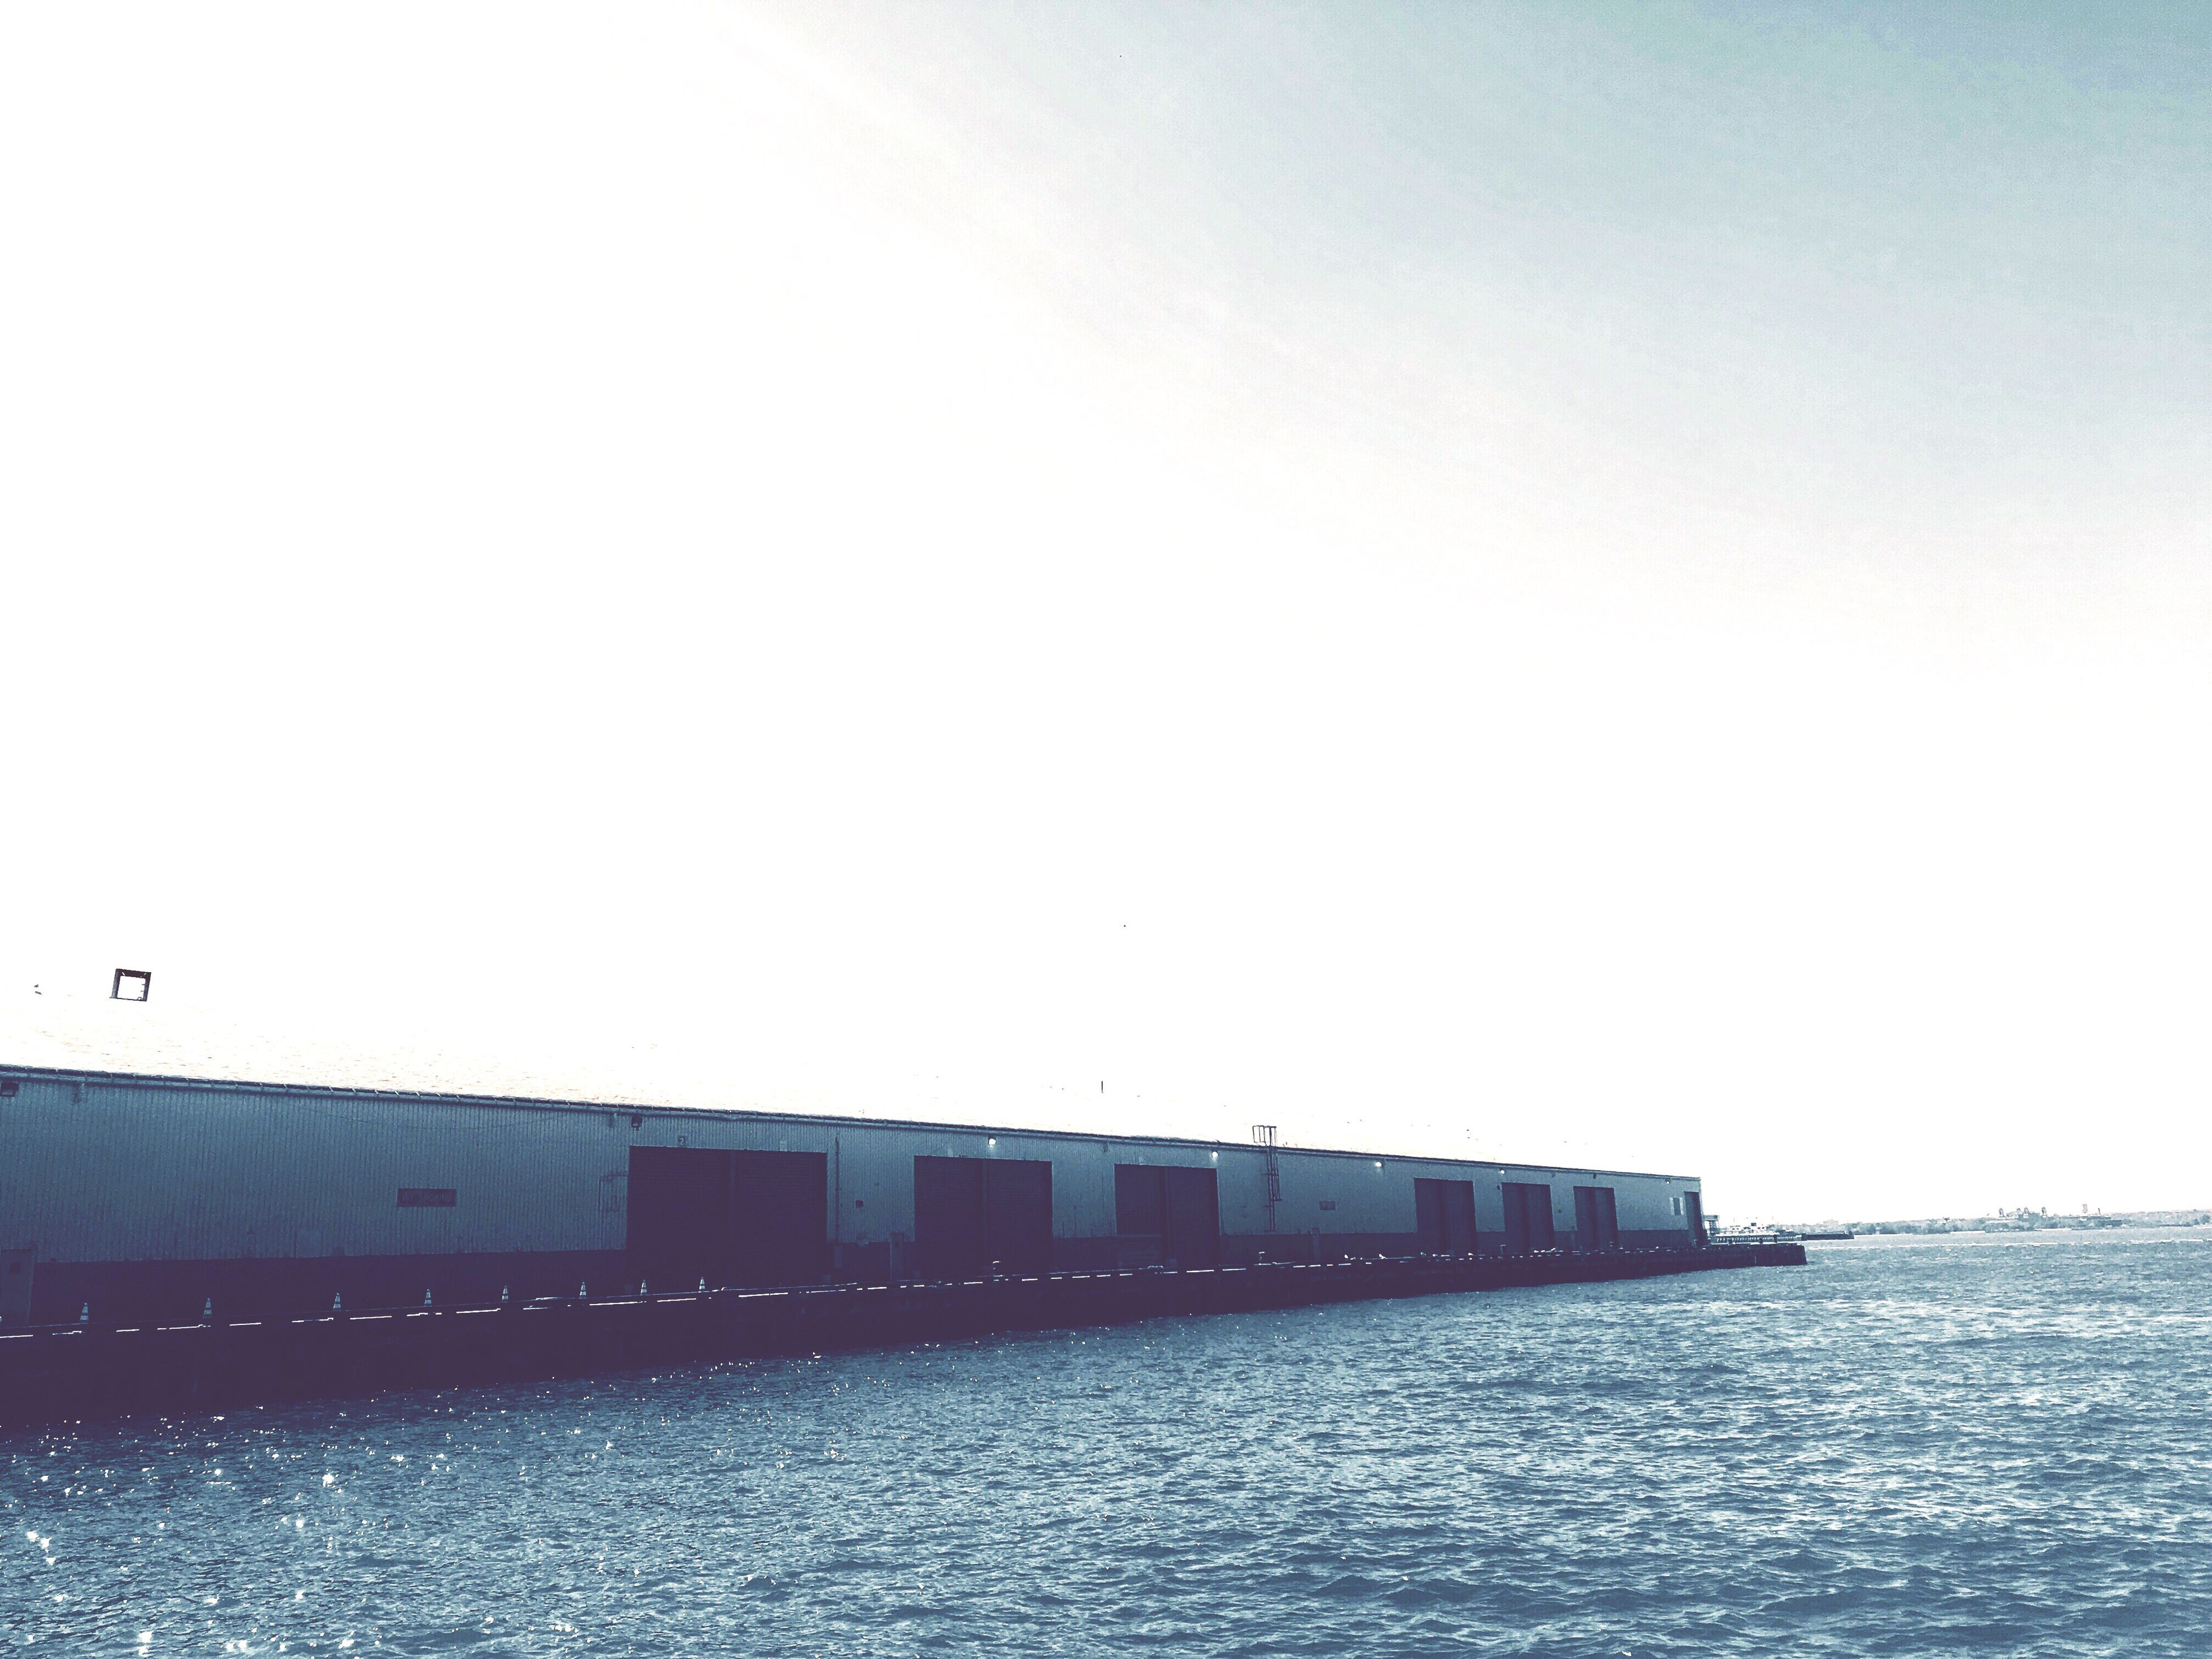 waterfront, architecture, clear sky, water, building exterior, built structure, copy space, sea, calm, tranquil scene, tranquility, day, outdoors, scenics, surface level, no people, ocean, solitude